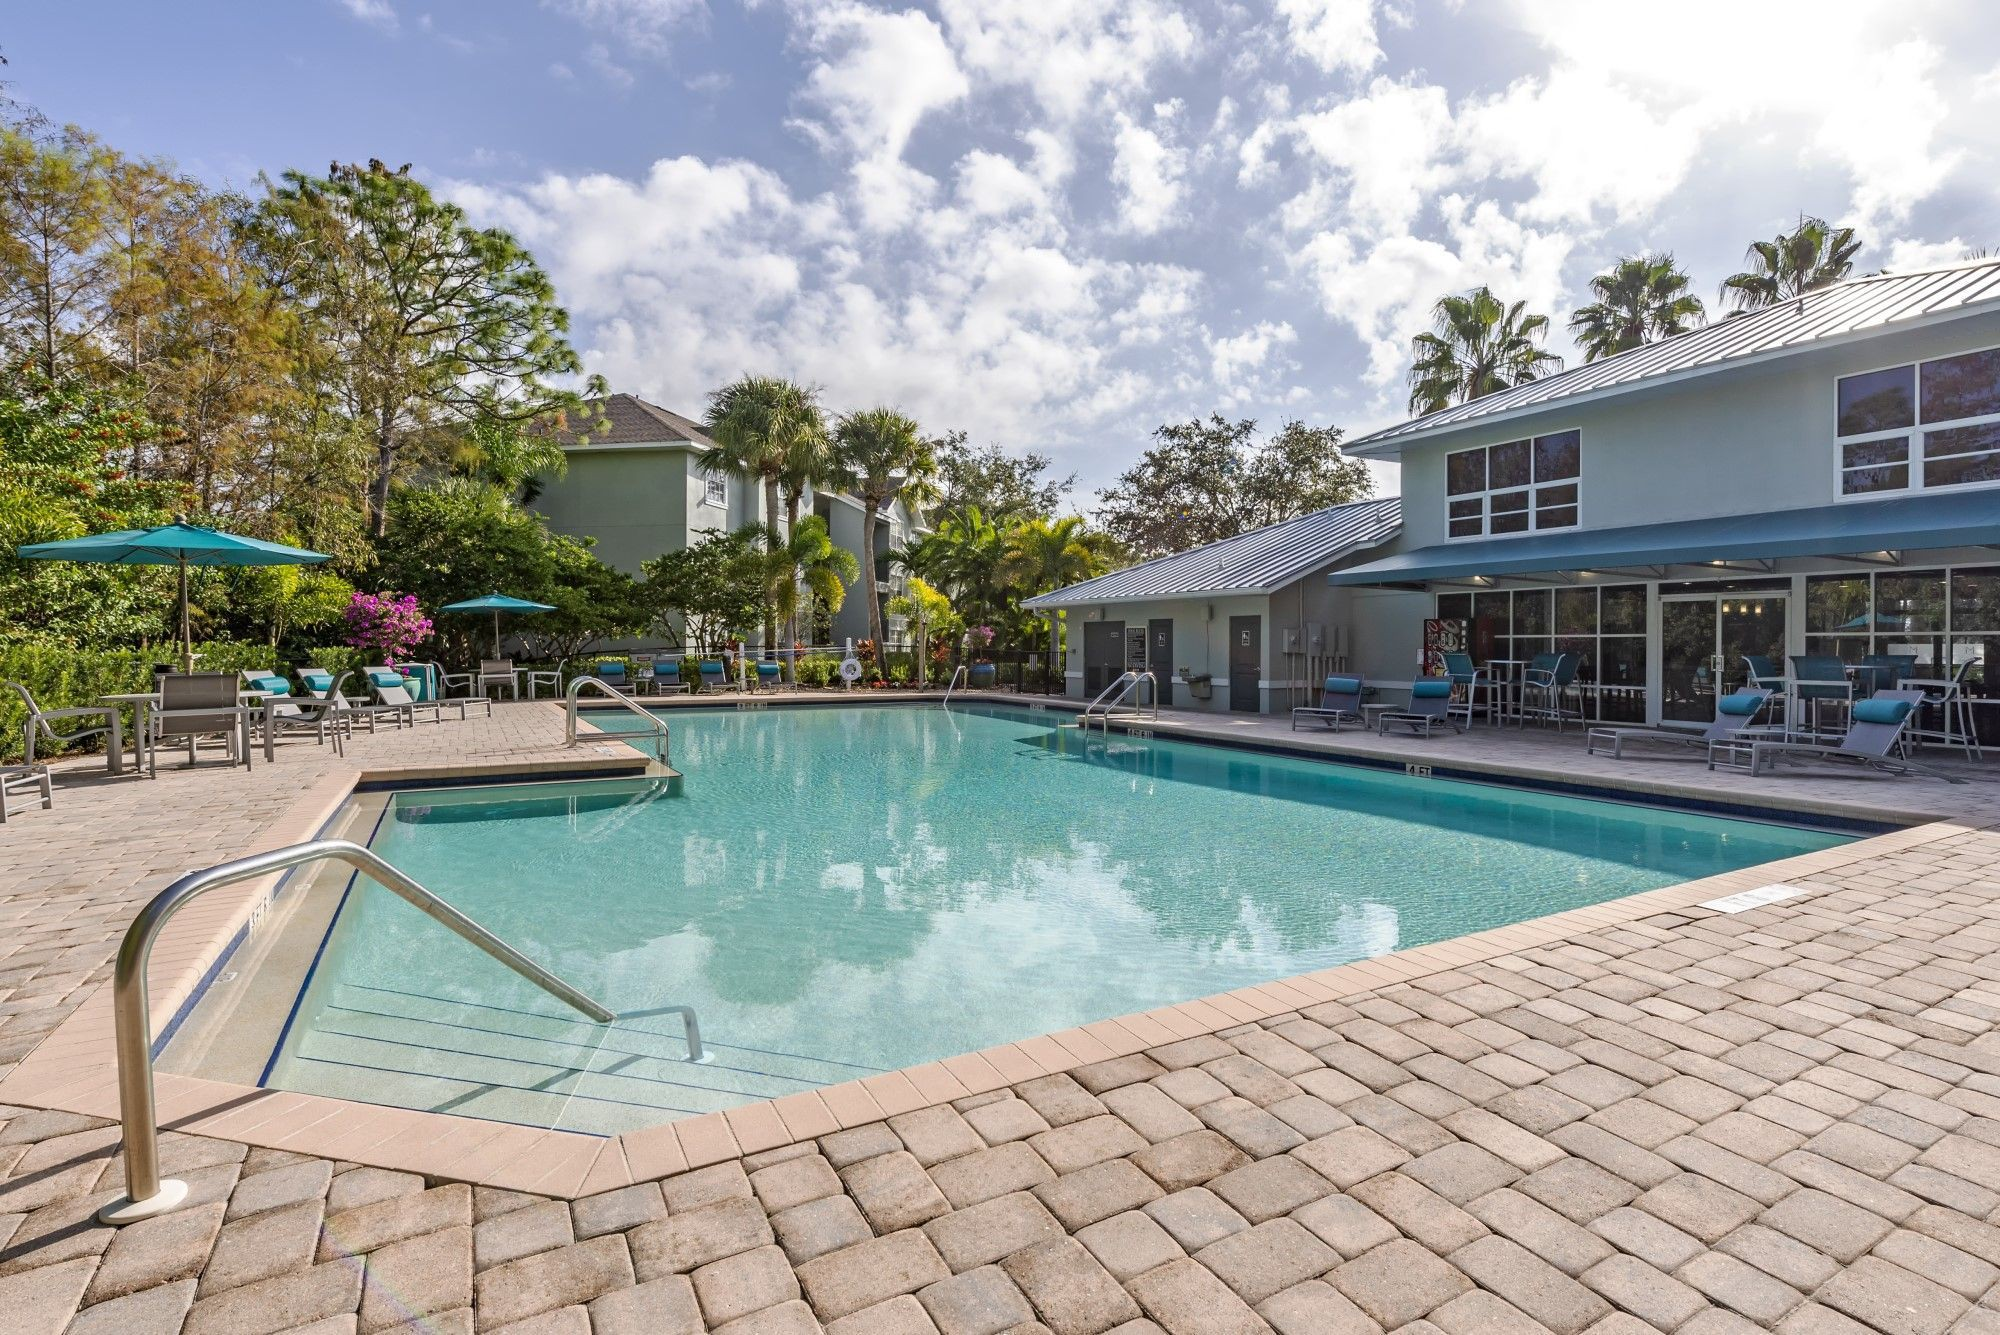 Apartments Near Hodges Meadow Brook Preserve for Hodges University Students in Naples, FL